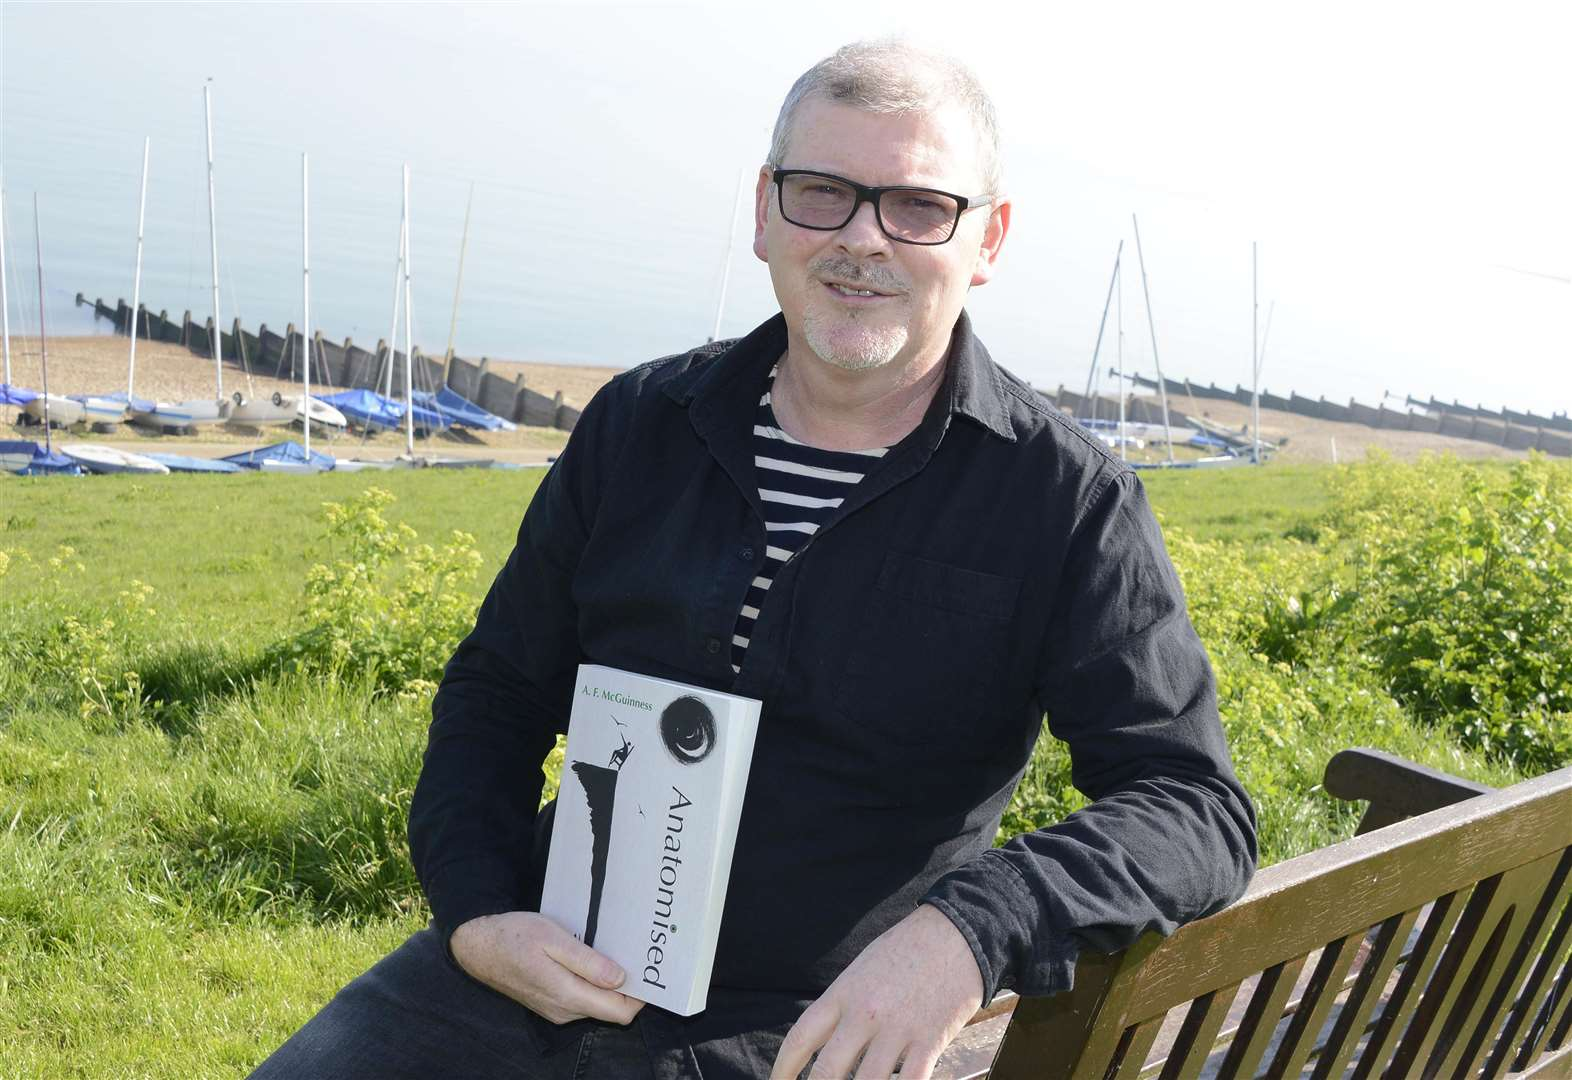 Author publishes book that 'saved his life'